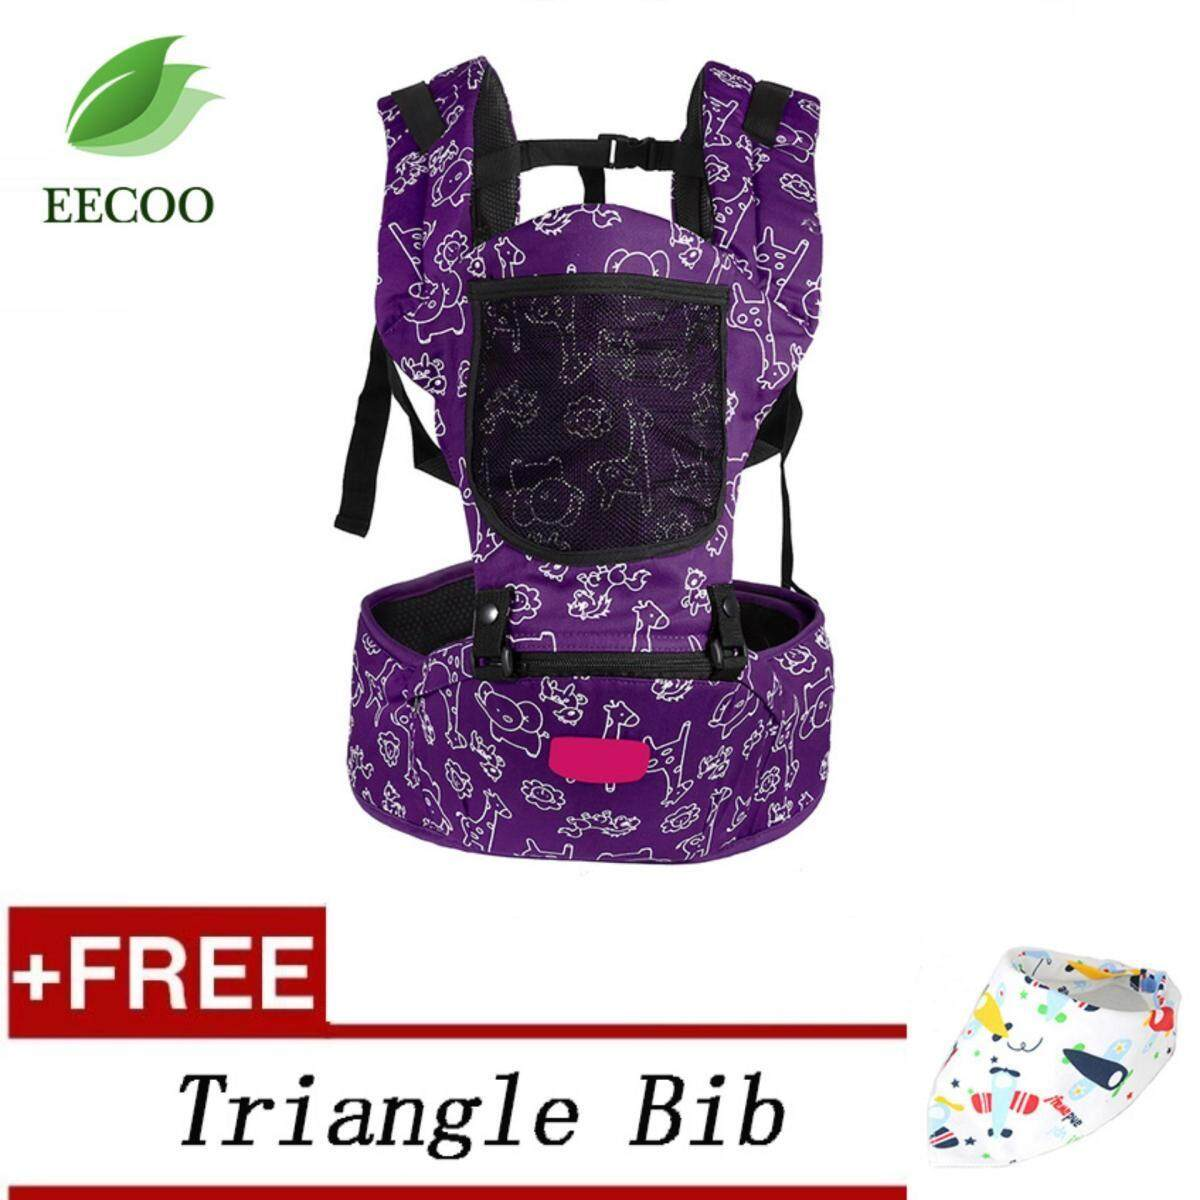 (Buy 1 Get 1 Free Gift) 1Pc Adjustable Newborn Baby Backpack Carrier Breathable Seat Pad Fashion Floral Mummy Sling Backpack (Purple)